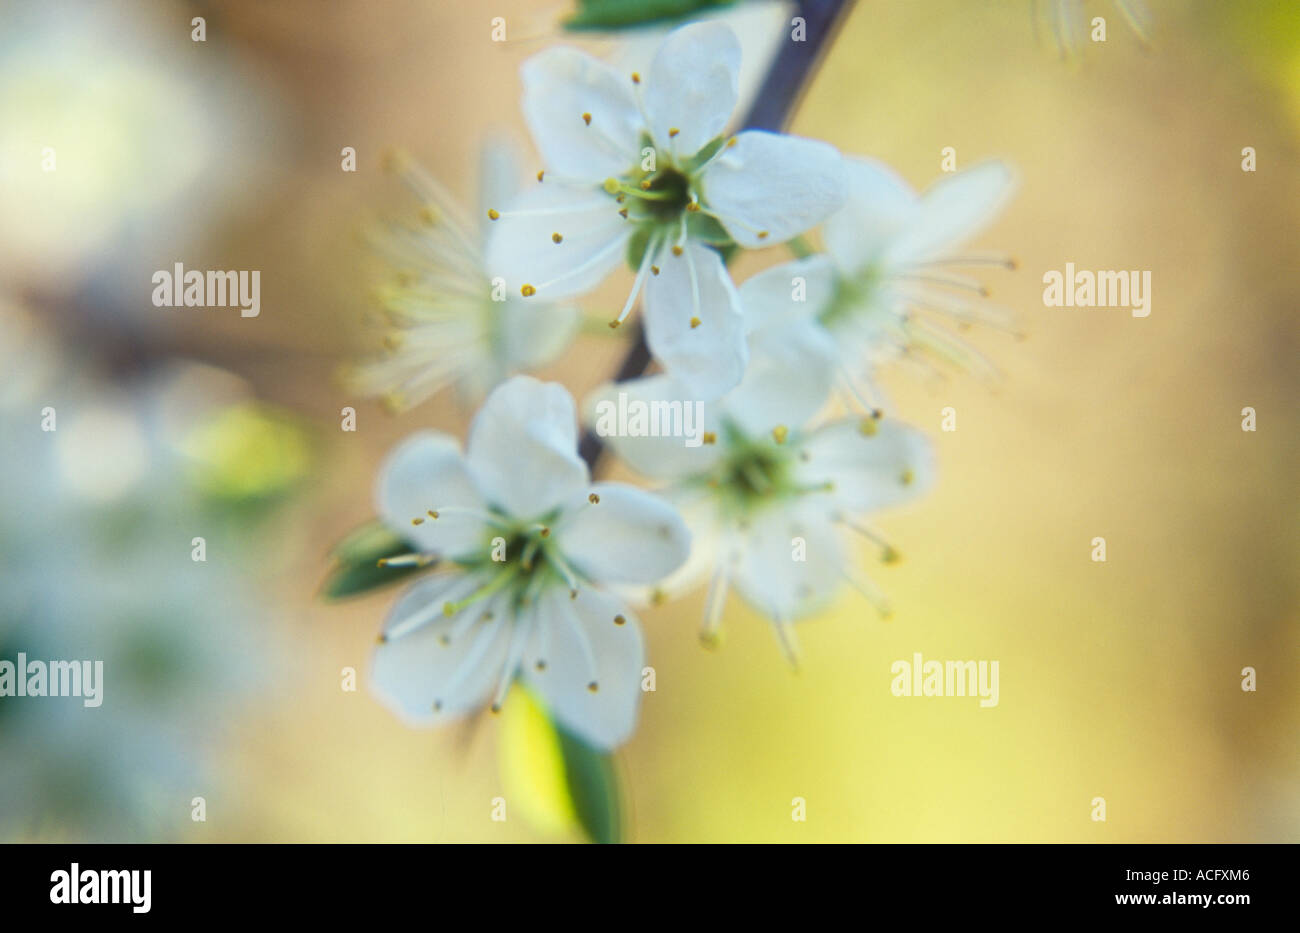 Close up of the early spring white flowers with some leaves of stock close up of the early spring white flowers with some leaves of blackthorn or prunus spinosa in warm light mightylinksfo